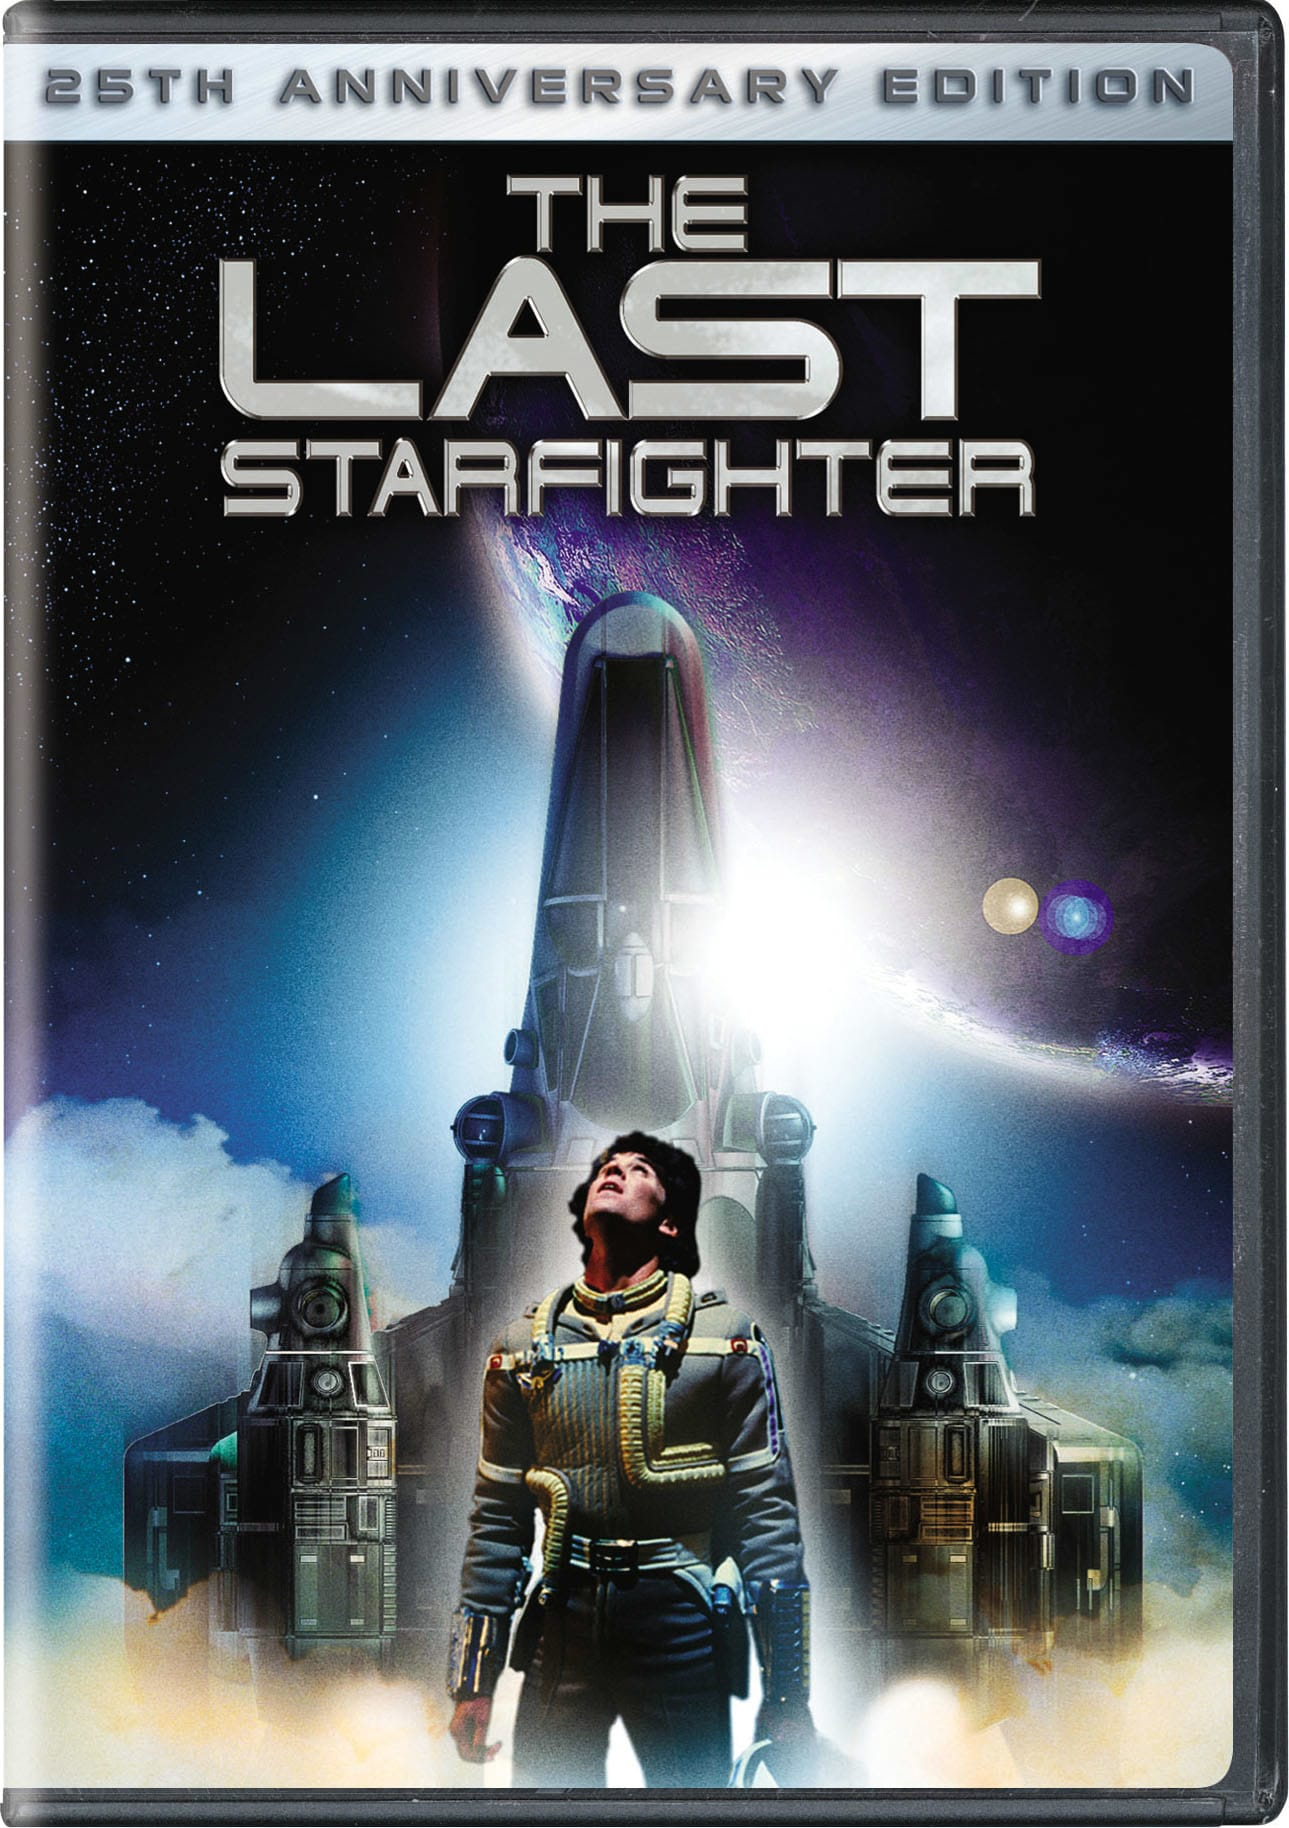 The Last Starfighter (25th Anniversary Edition) [DVD]